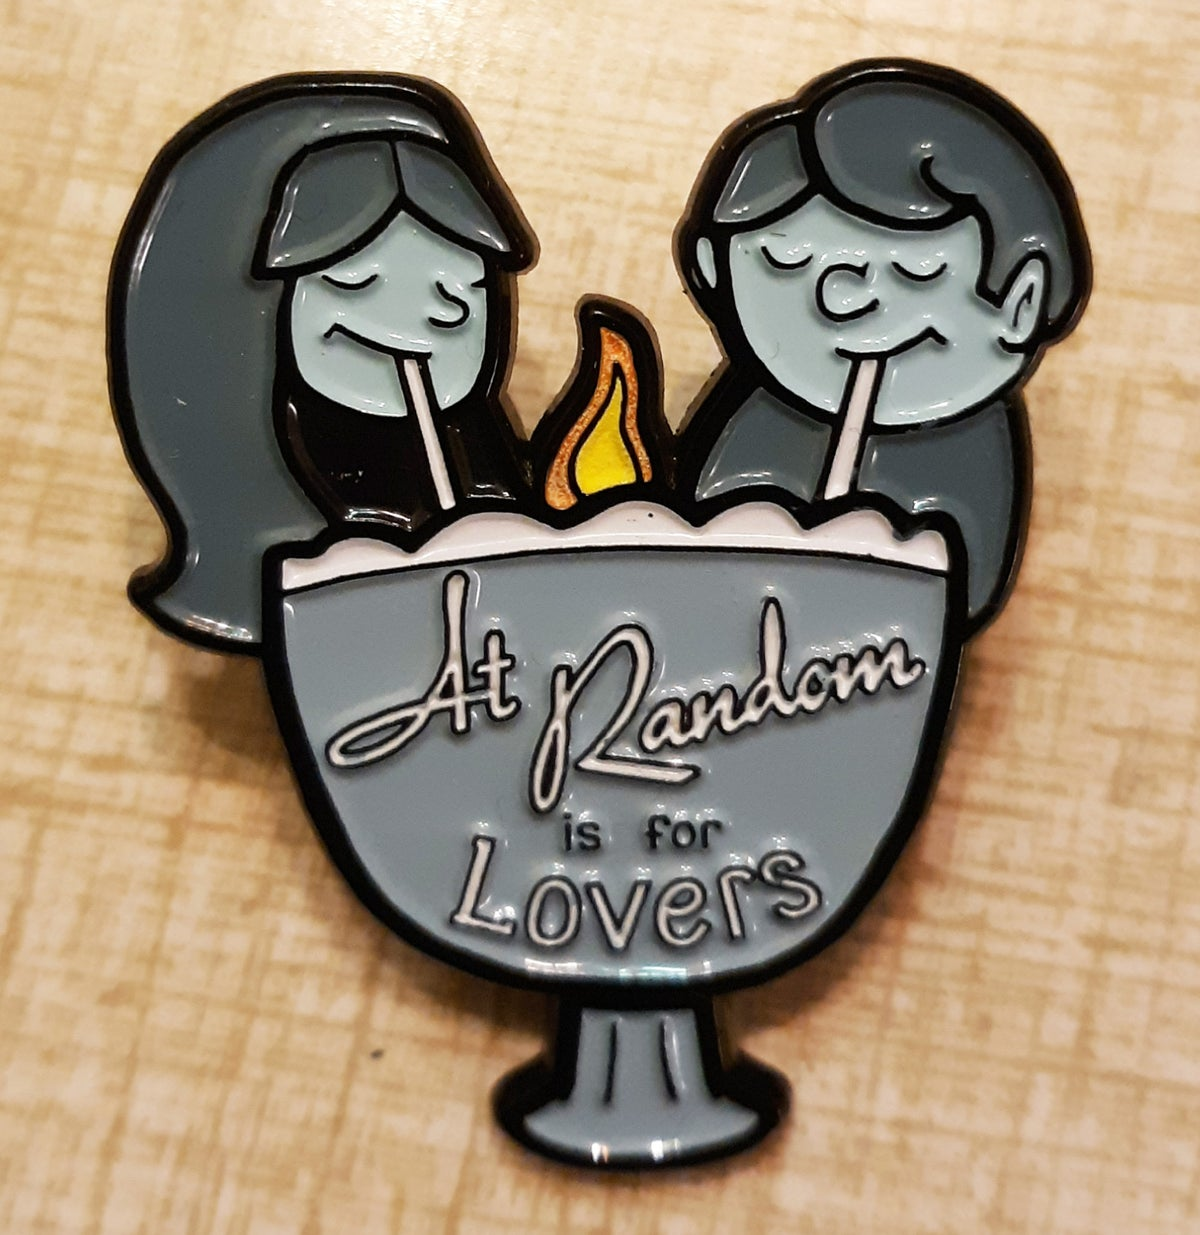 "AT RANDOM IS FOR LOVERS Milwaukee Tiki Love Bowl BLUE 1.75"" Soft Enamel Pin w/ Glowing Flame"